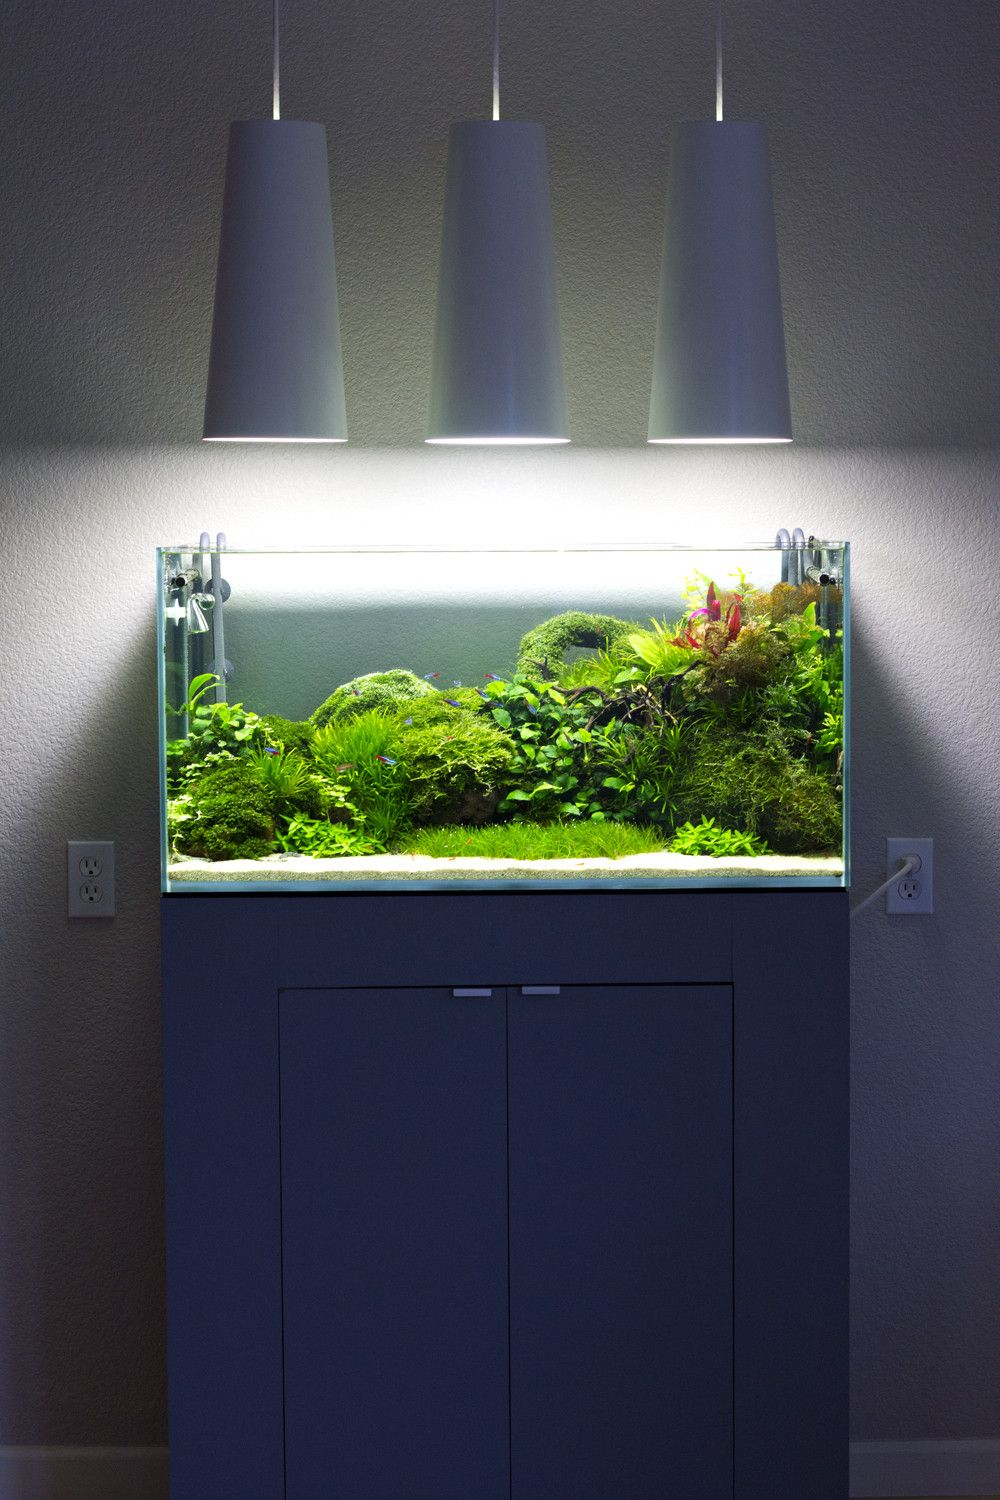 I Ve Been On This Site For A Long Time And Never Made An Account My Brother Told Me I Should Share My Aquarium What Do You Guys Think Susswasseraquarium Aquarien Und